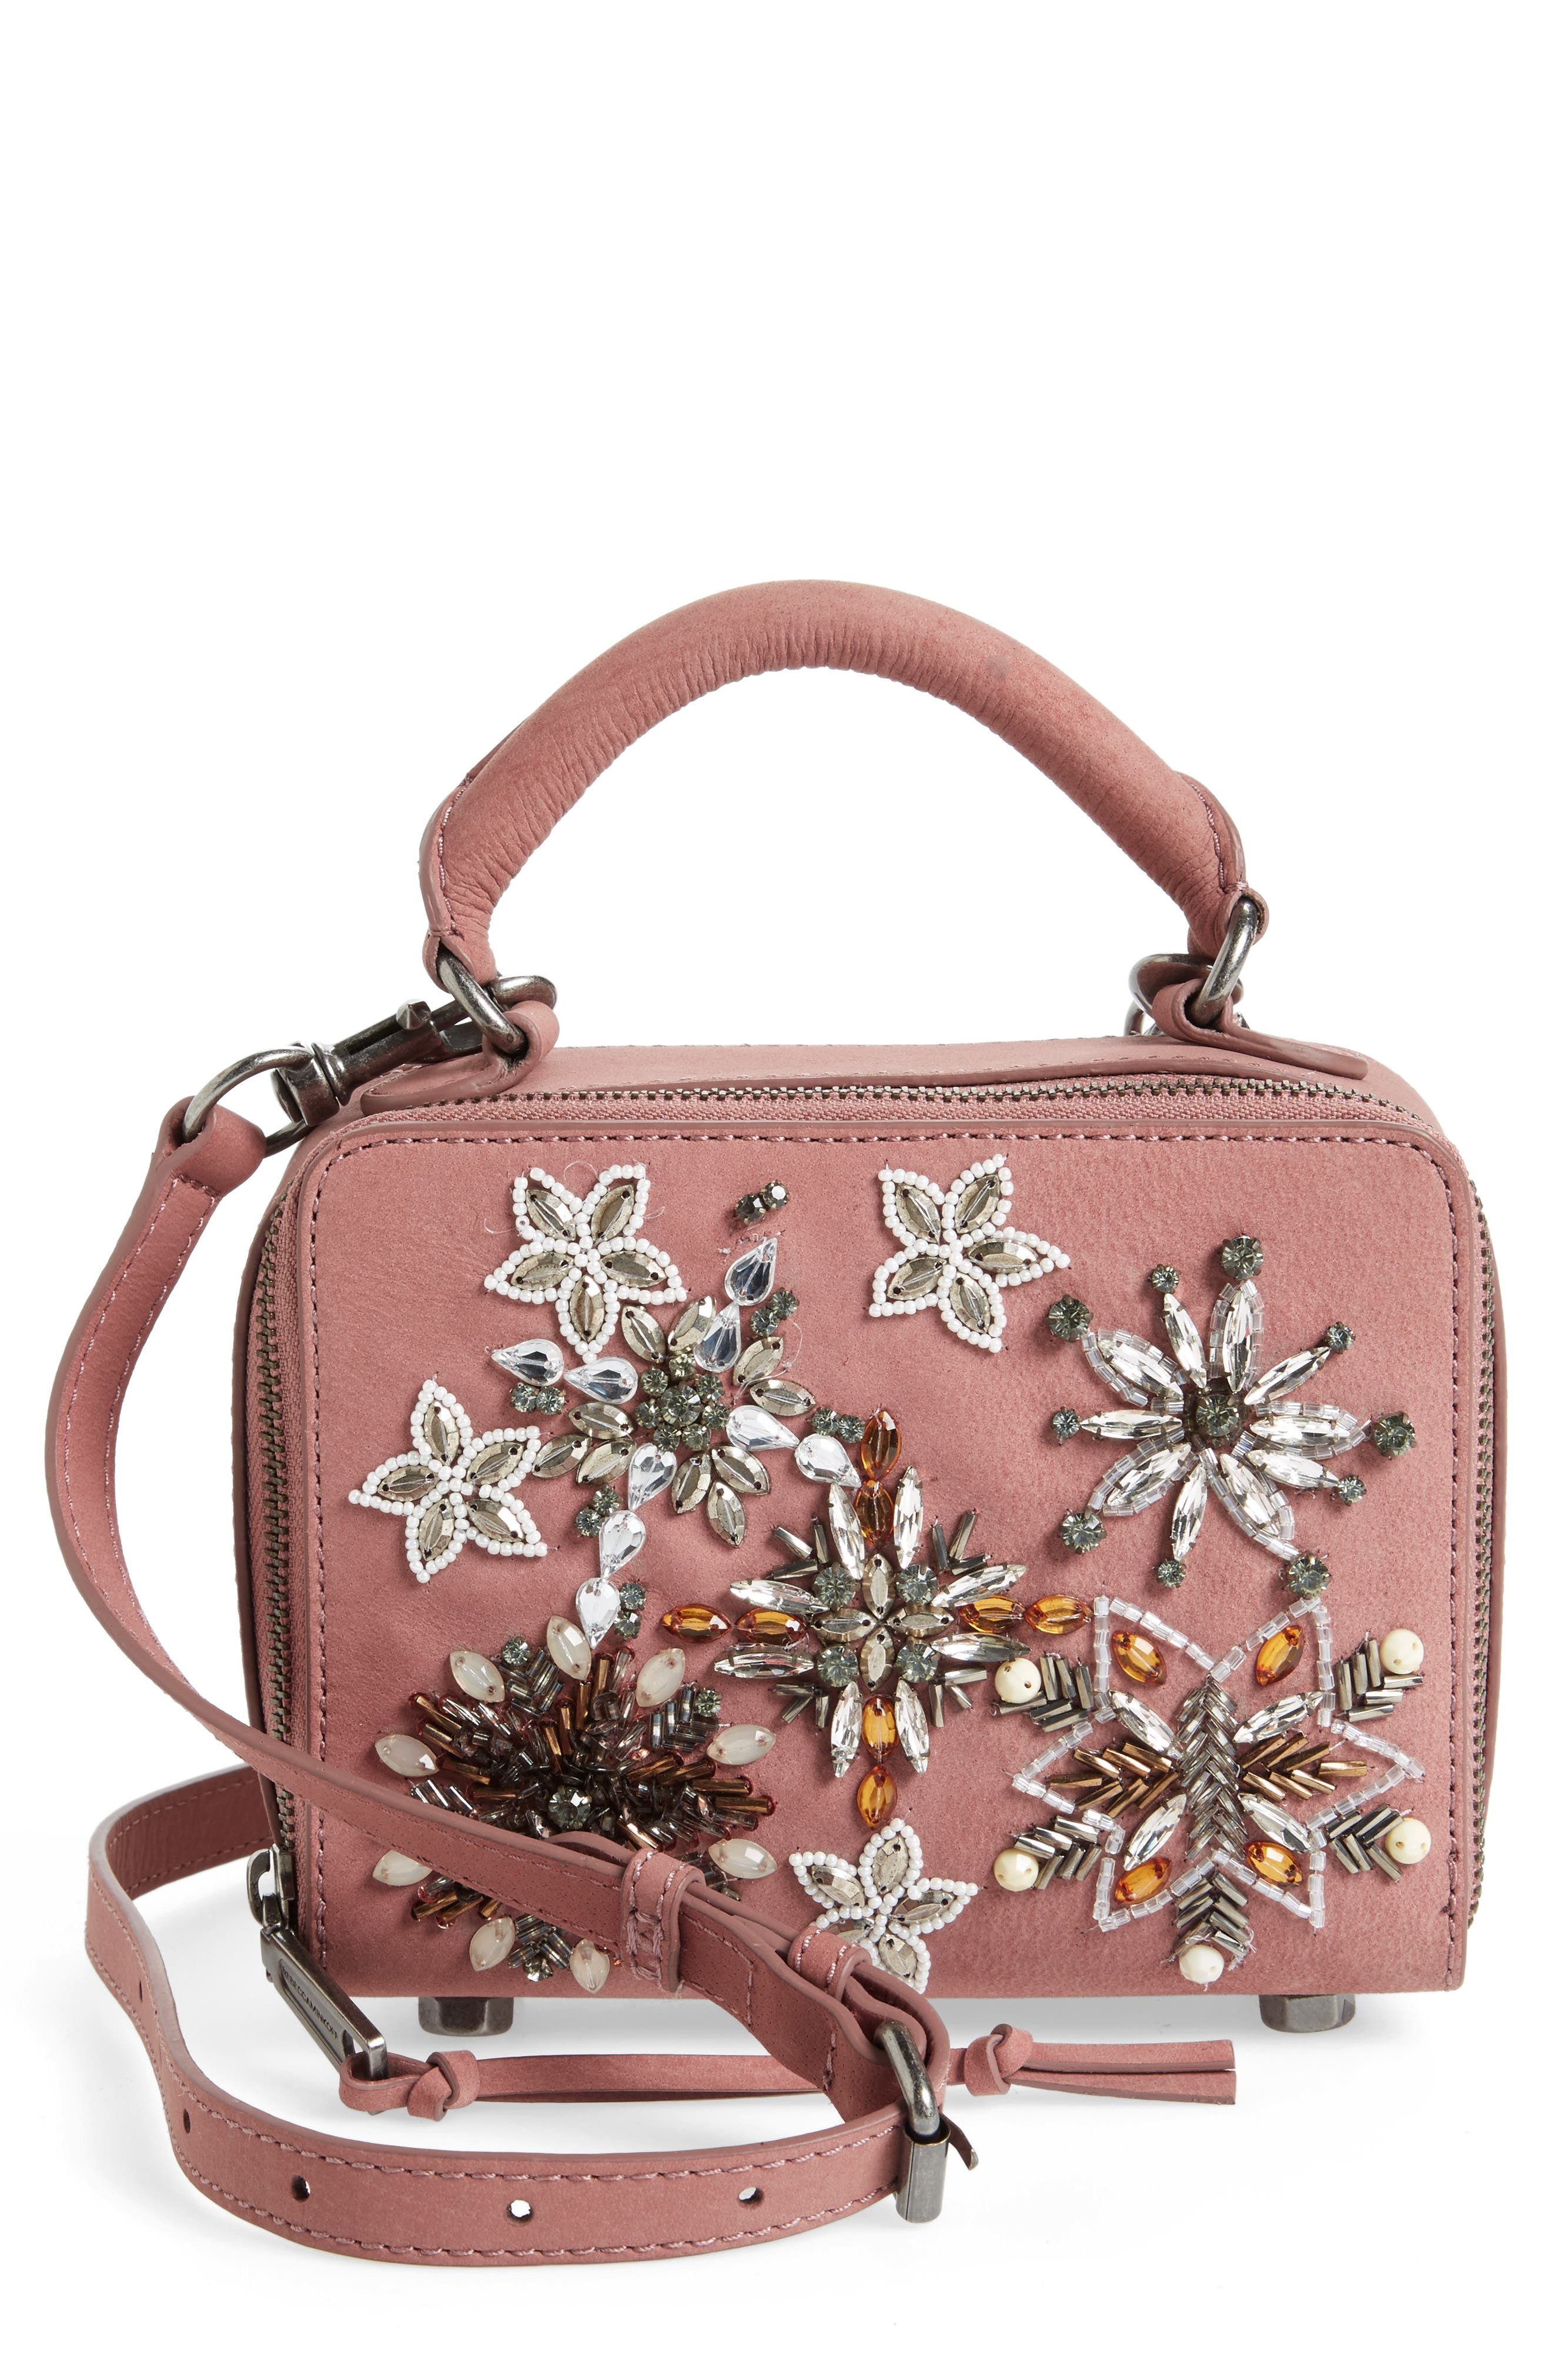 Main Image - Rebecca Minkoff Embellished Box Leather Crossbody Bag